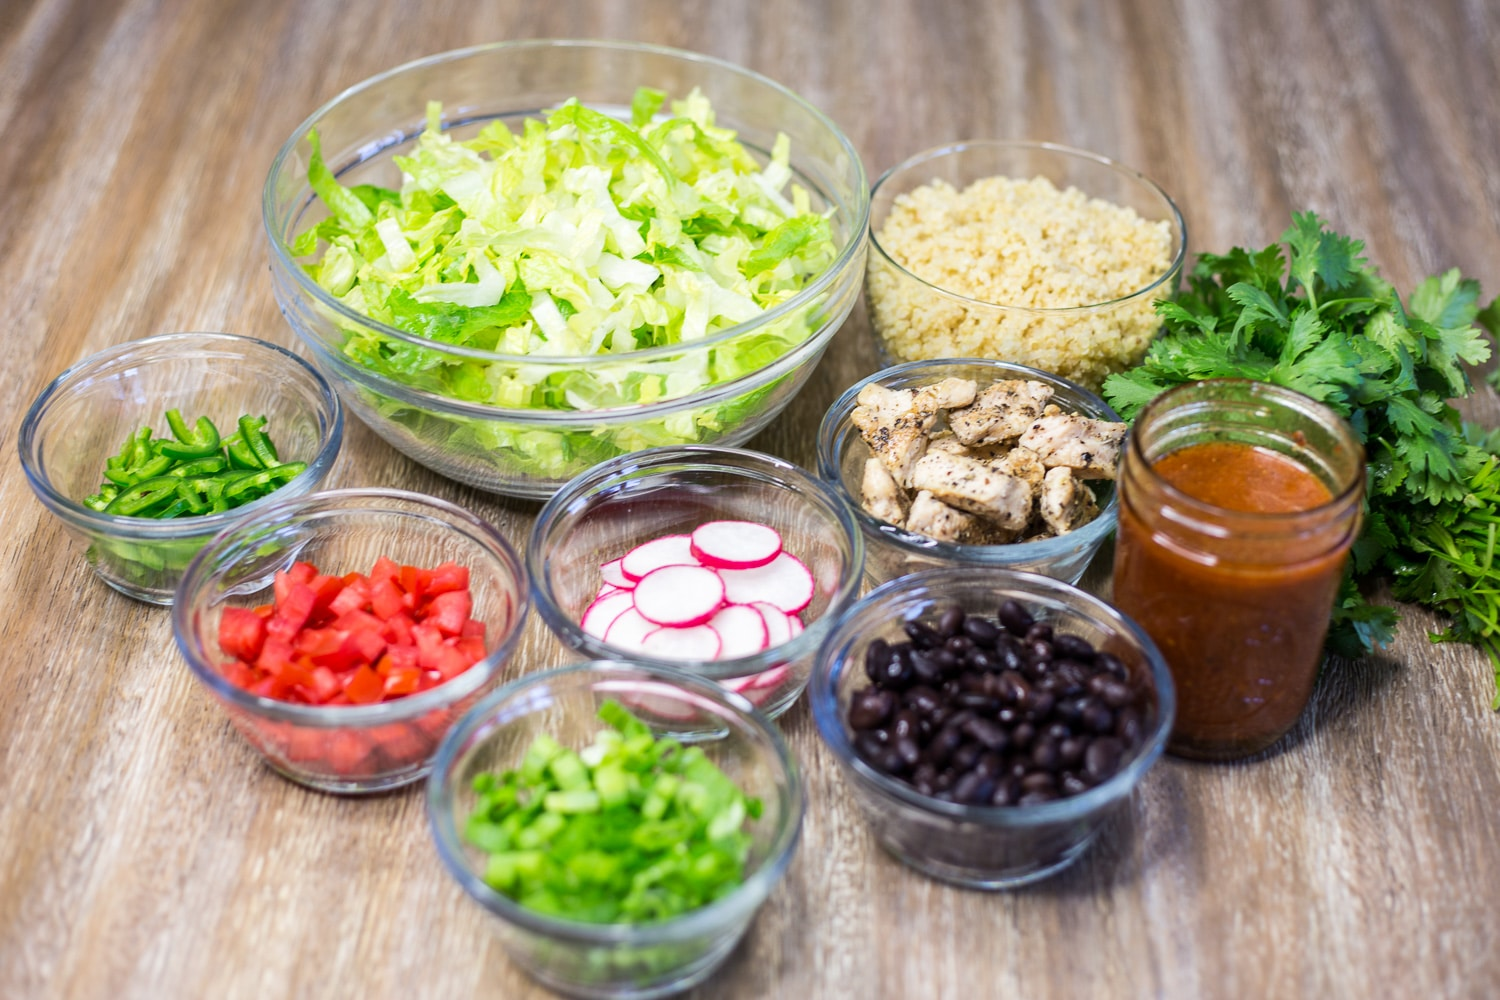 Salad in a jar makes for a great lunch on the go! |artzyfoodie.com|